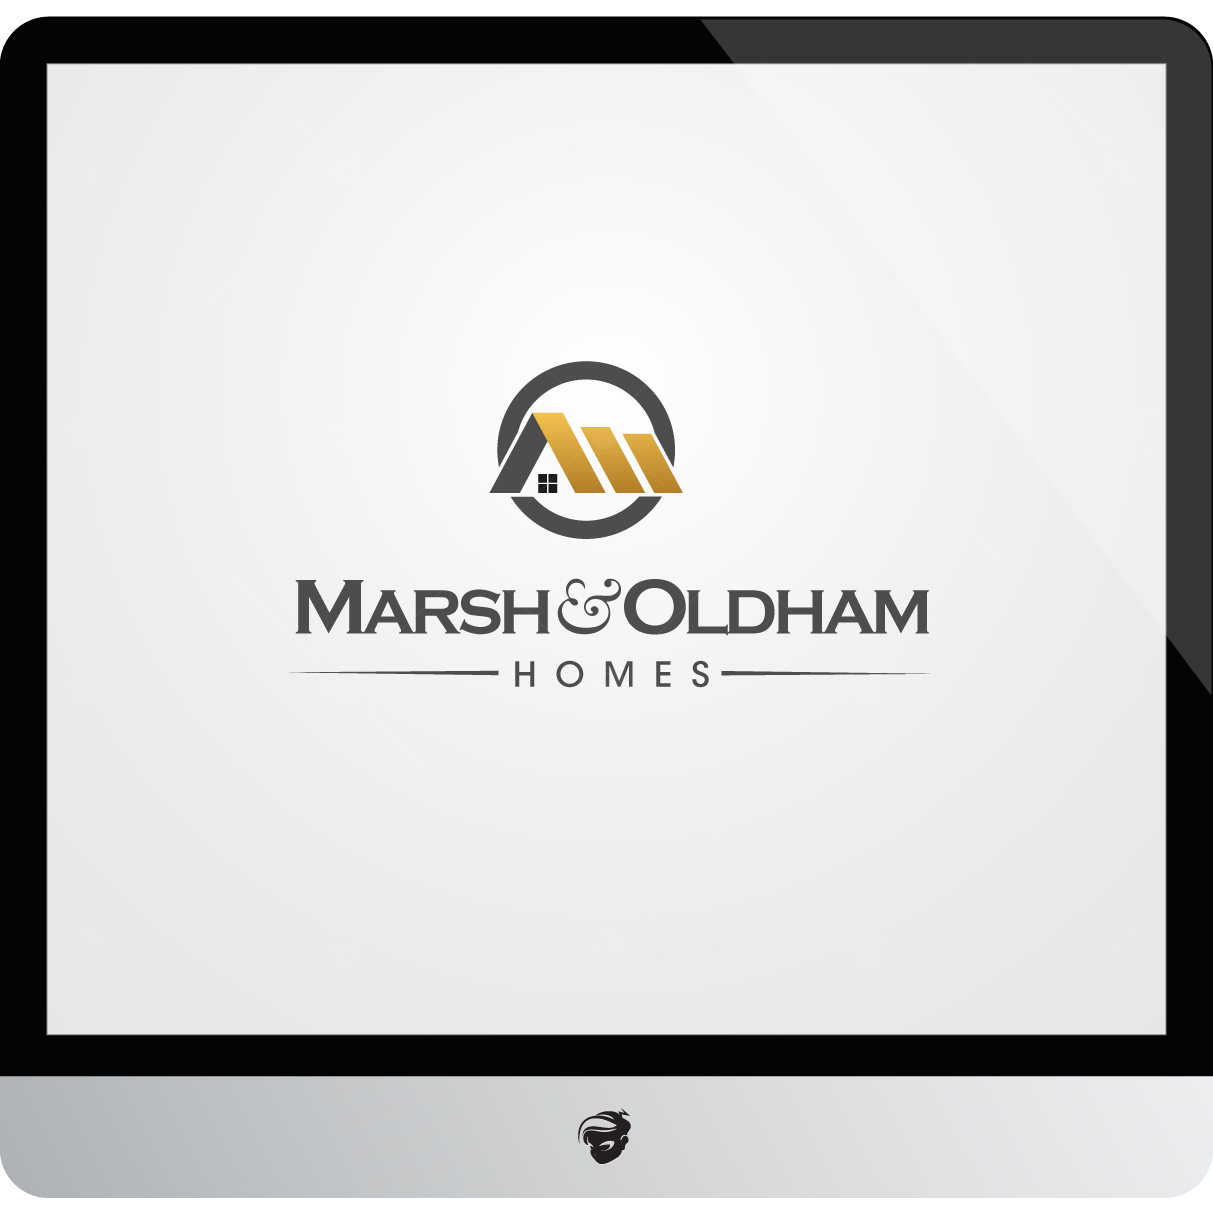 Logo Design by zesthar - Entry No. 202 in the Logo Design Contest Artistic Logo Design for Marsh & Oldham Homes.